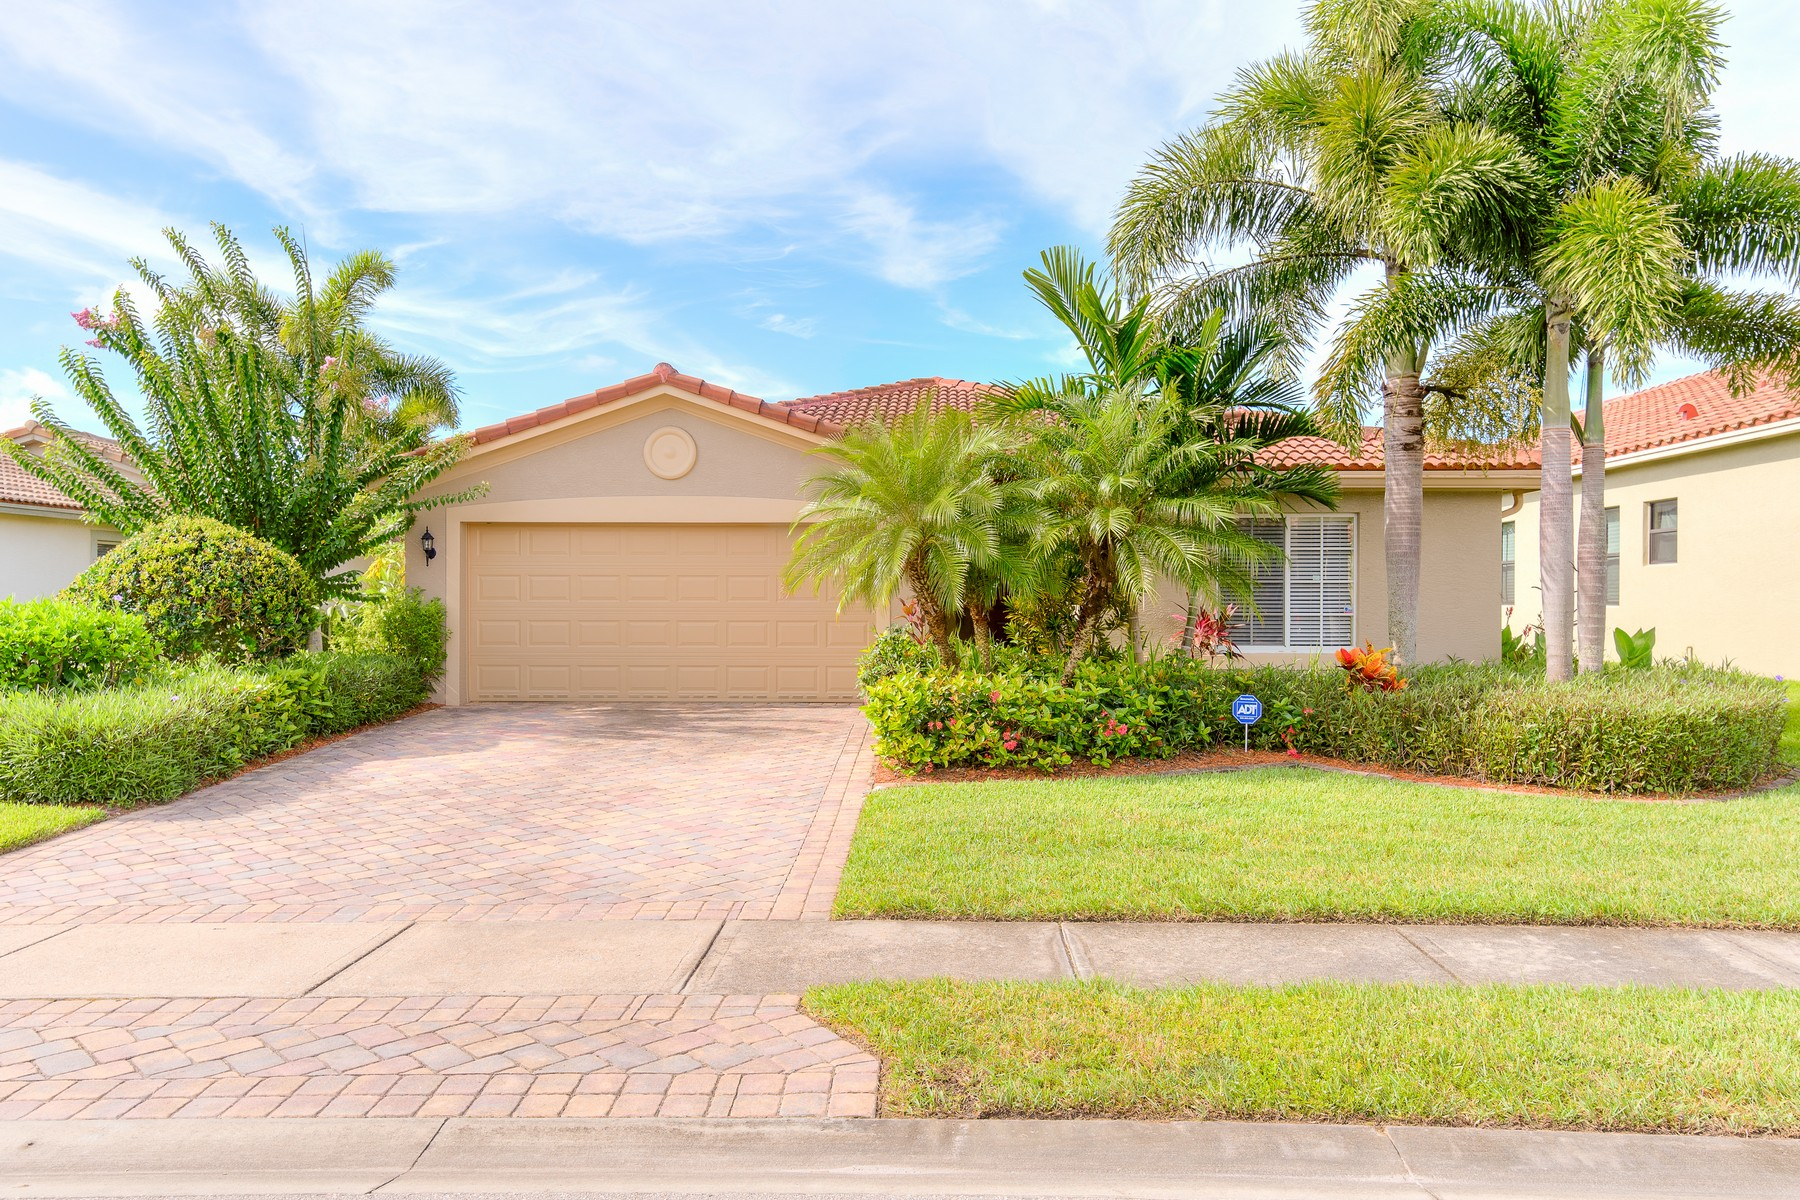 Single Family Home for Sale at Captivating Mediterranean Style Home 4147 56th Lane Vero Beach, Florida 32967 United States